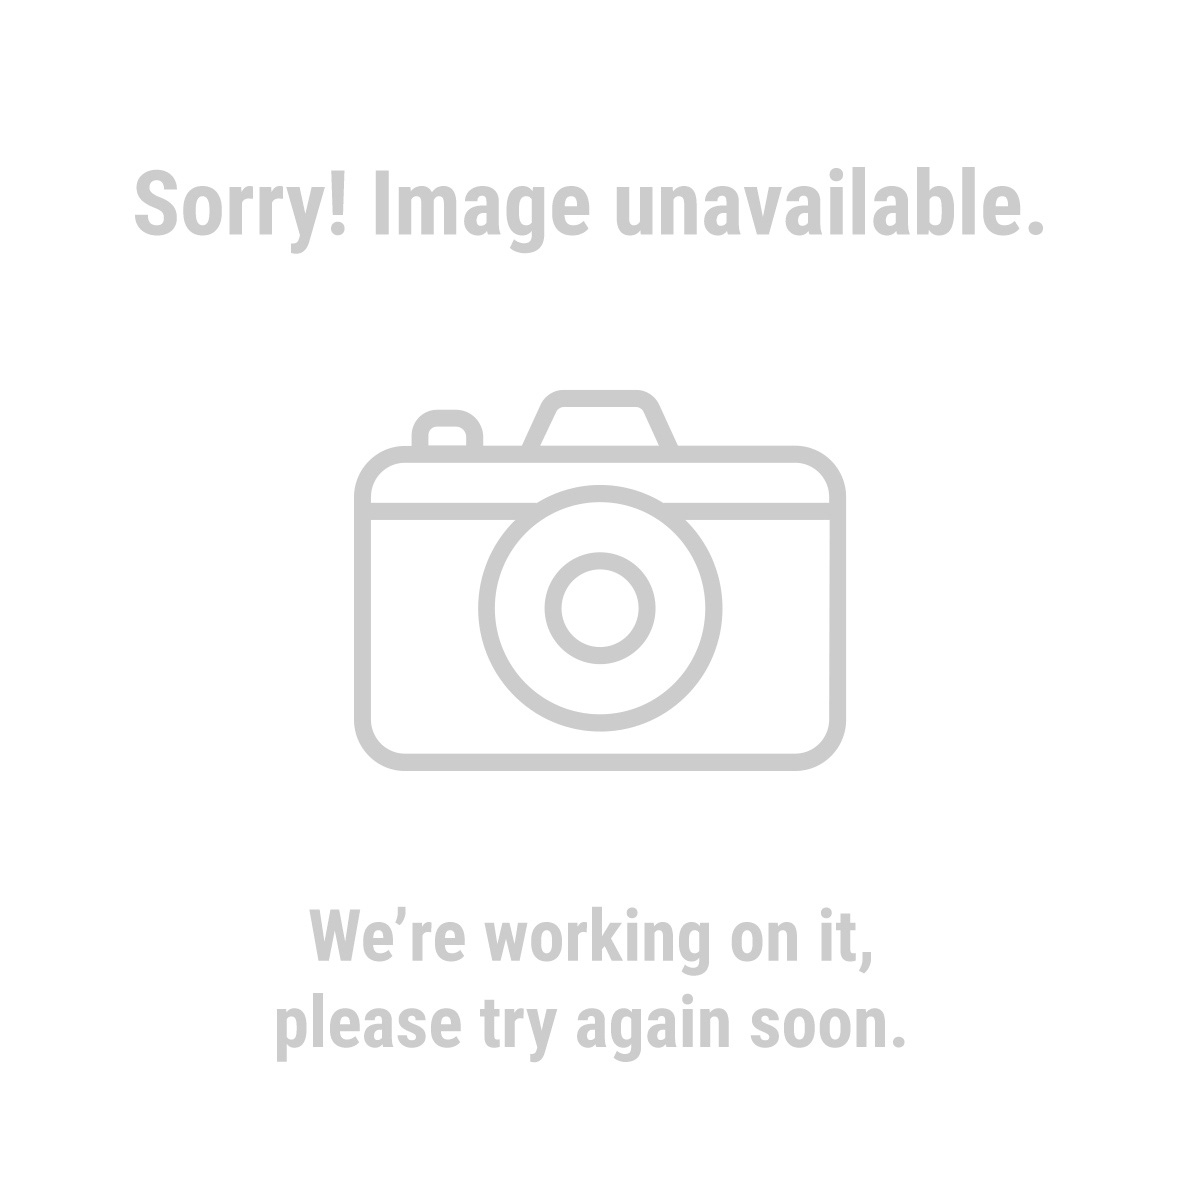 Central-Forge 69161 55 Lb. Rugged Cast Iron Anvil